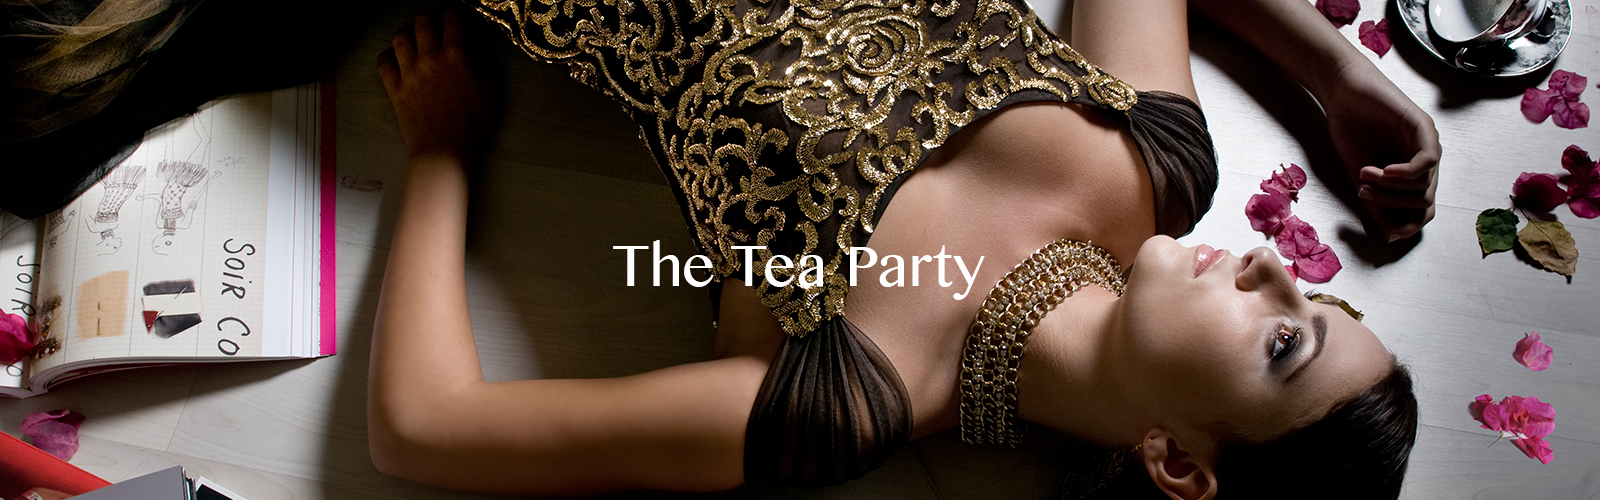 Tea Party-header-with-text